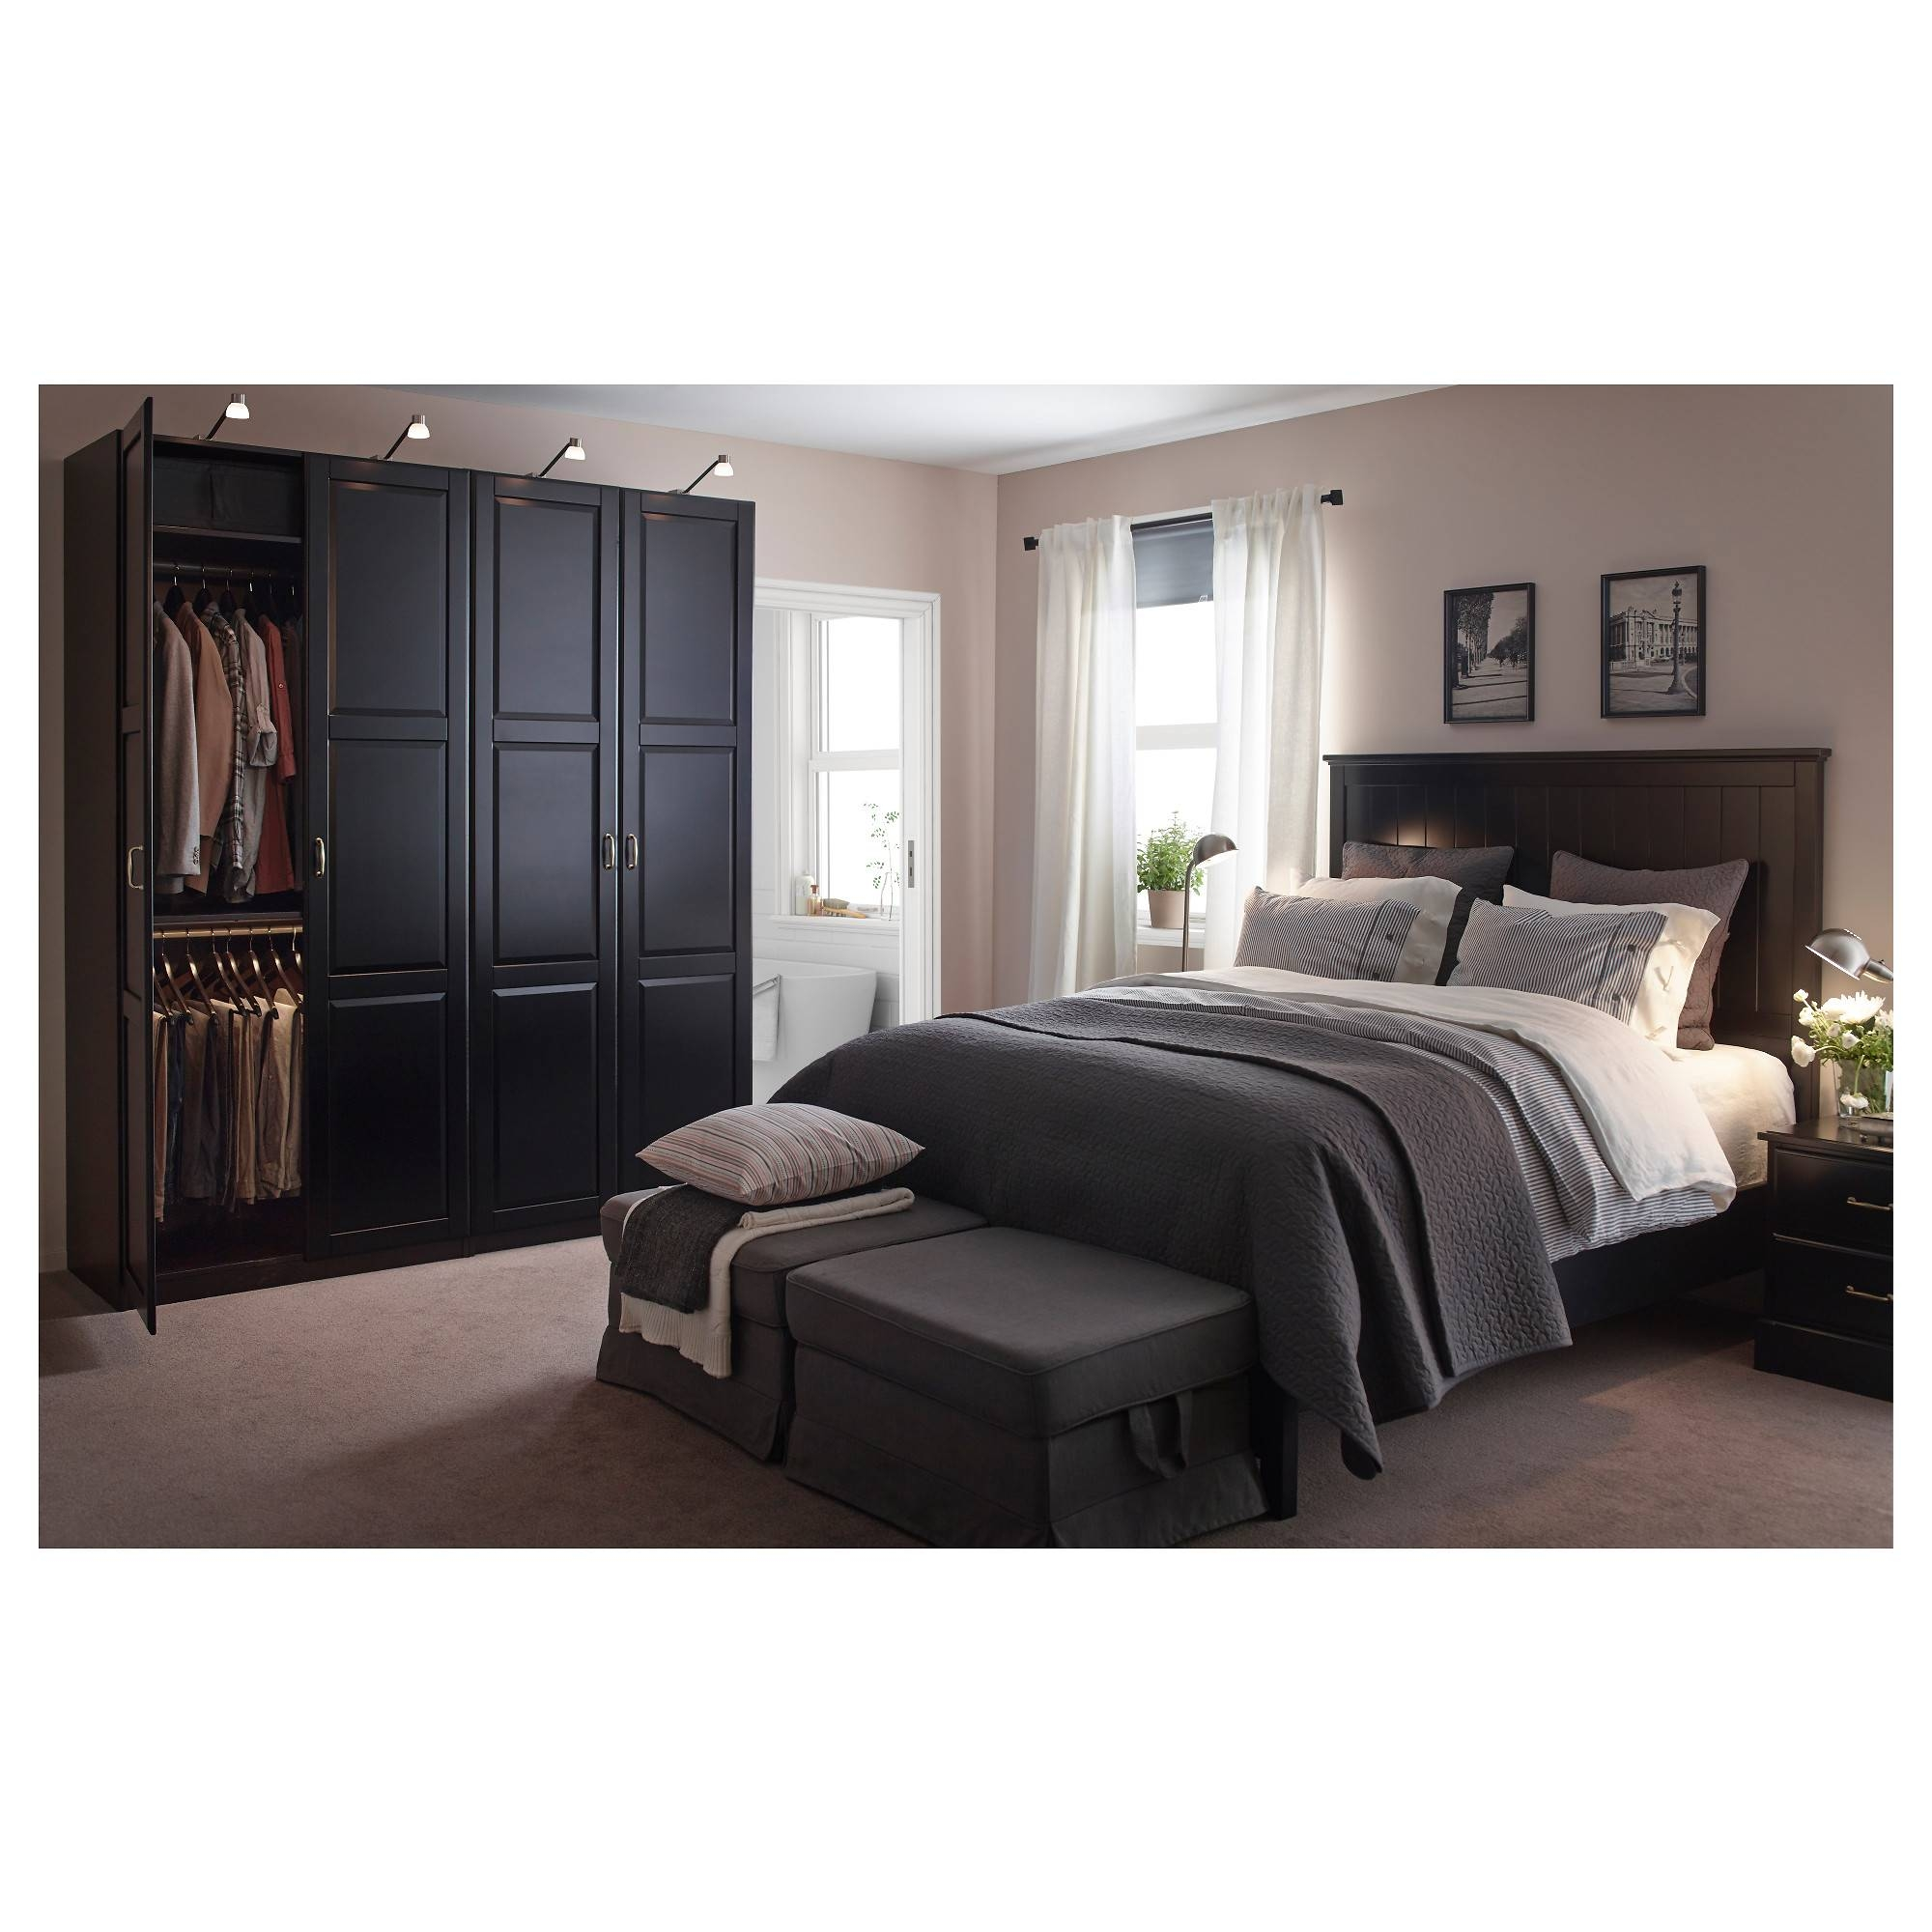 Undredal Door Black 50X229 Cm - Ikea throughout Bed and Wardrobes Combination (Image 13 of 15)